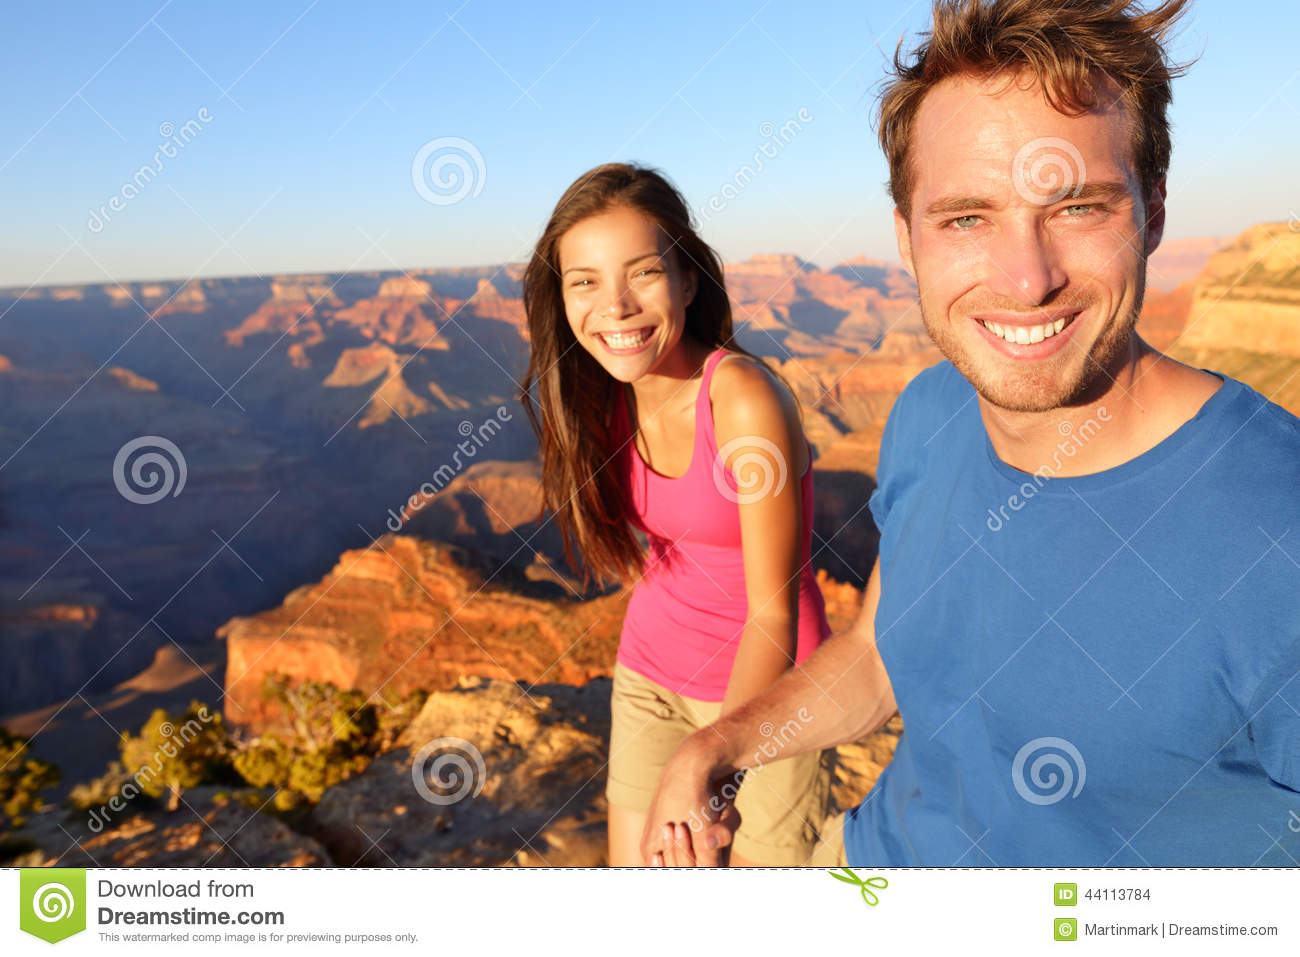 Hikers image of happy young people on hike holding hands on the South Rim  trail of Grand Canyon. Multiethnic couple, Asian woman, Caucasian man.